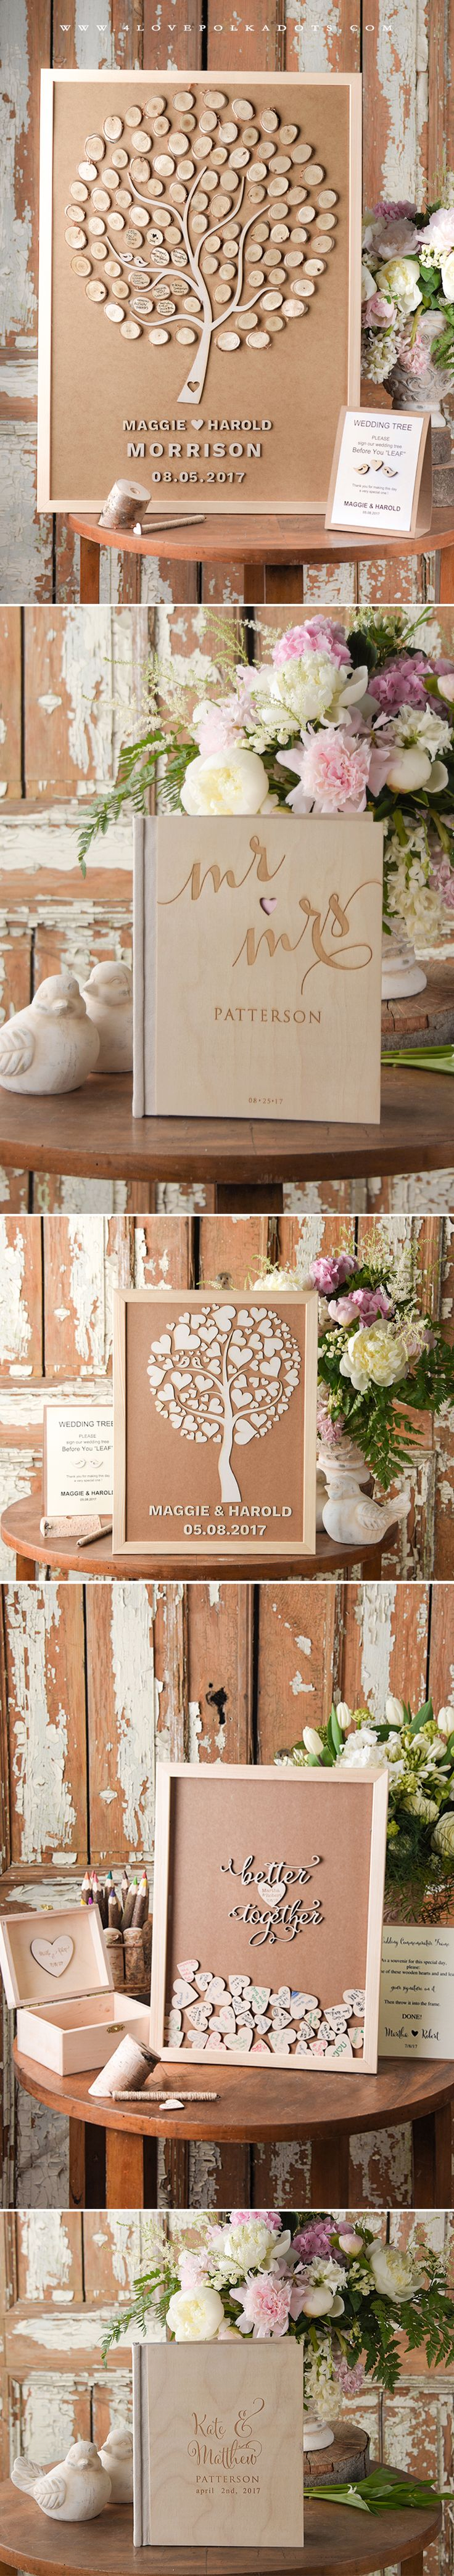 Wooden Wedding Guest Books - Alternative or Traditional ? Choose Your perfect design ! #realwood #weddingguestbook #romantic #rustic #boho